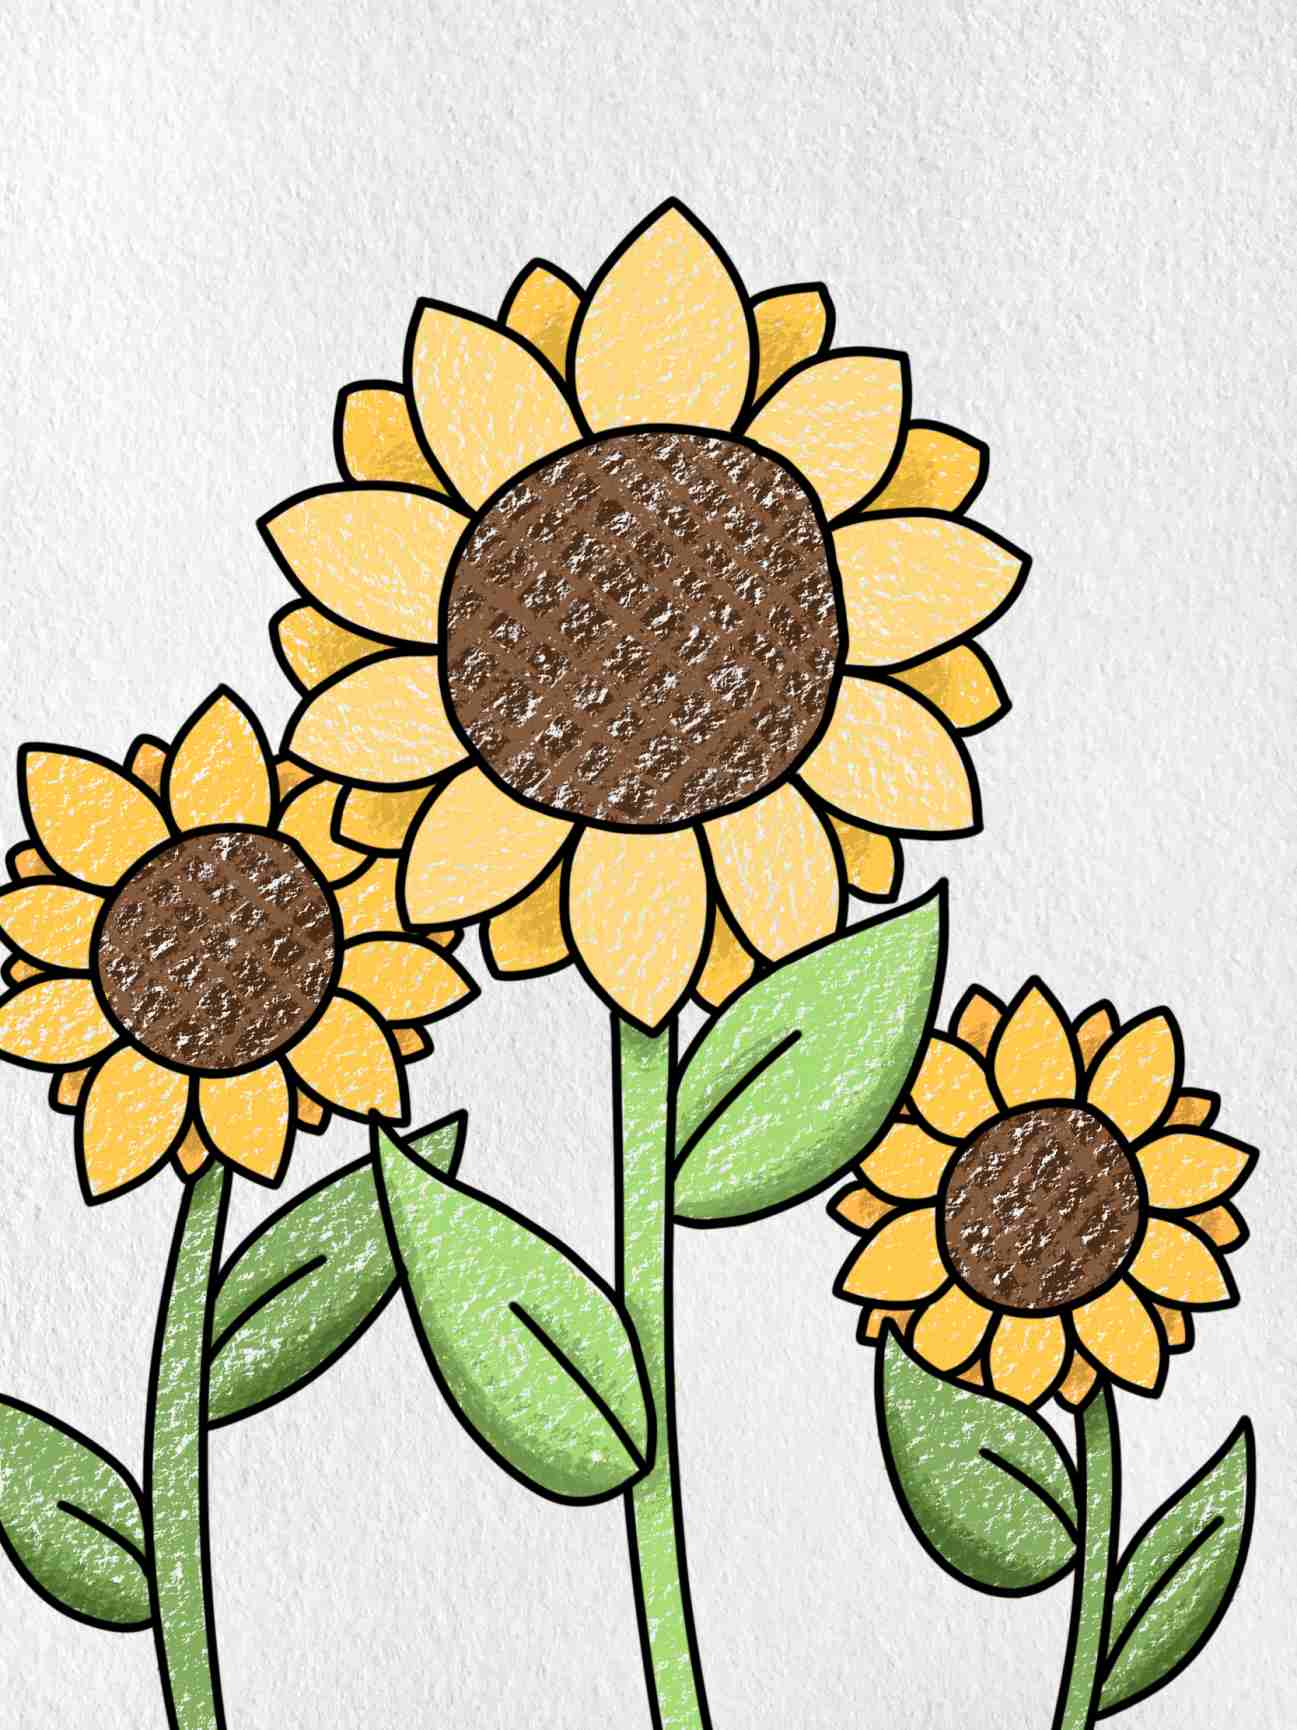 How To Draw Sunflowers: Step 6